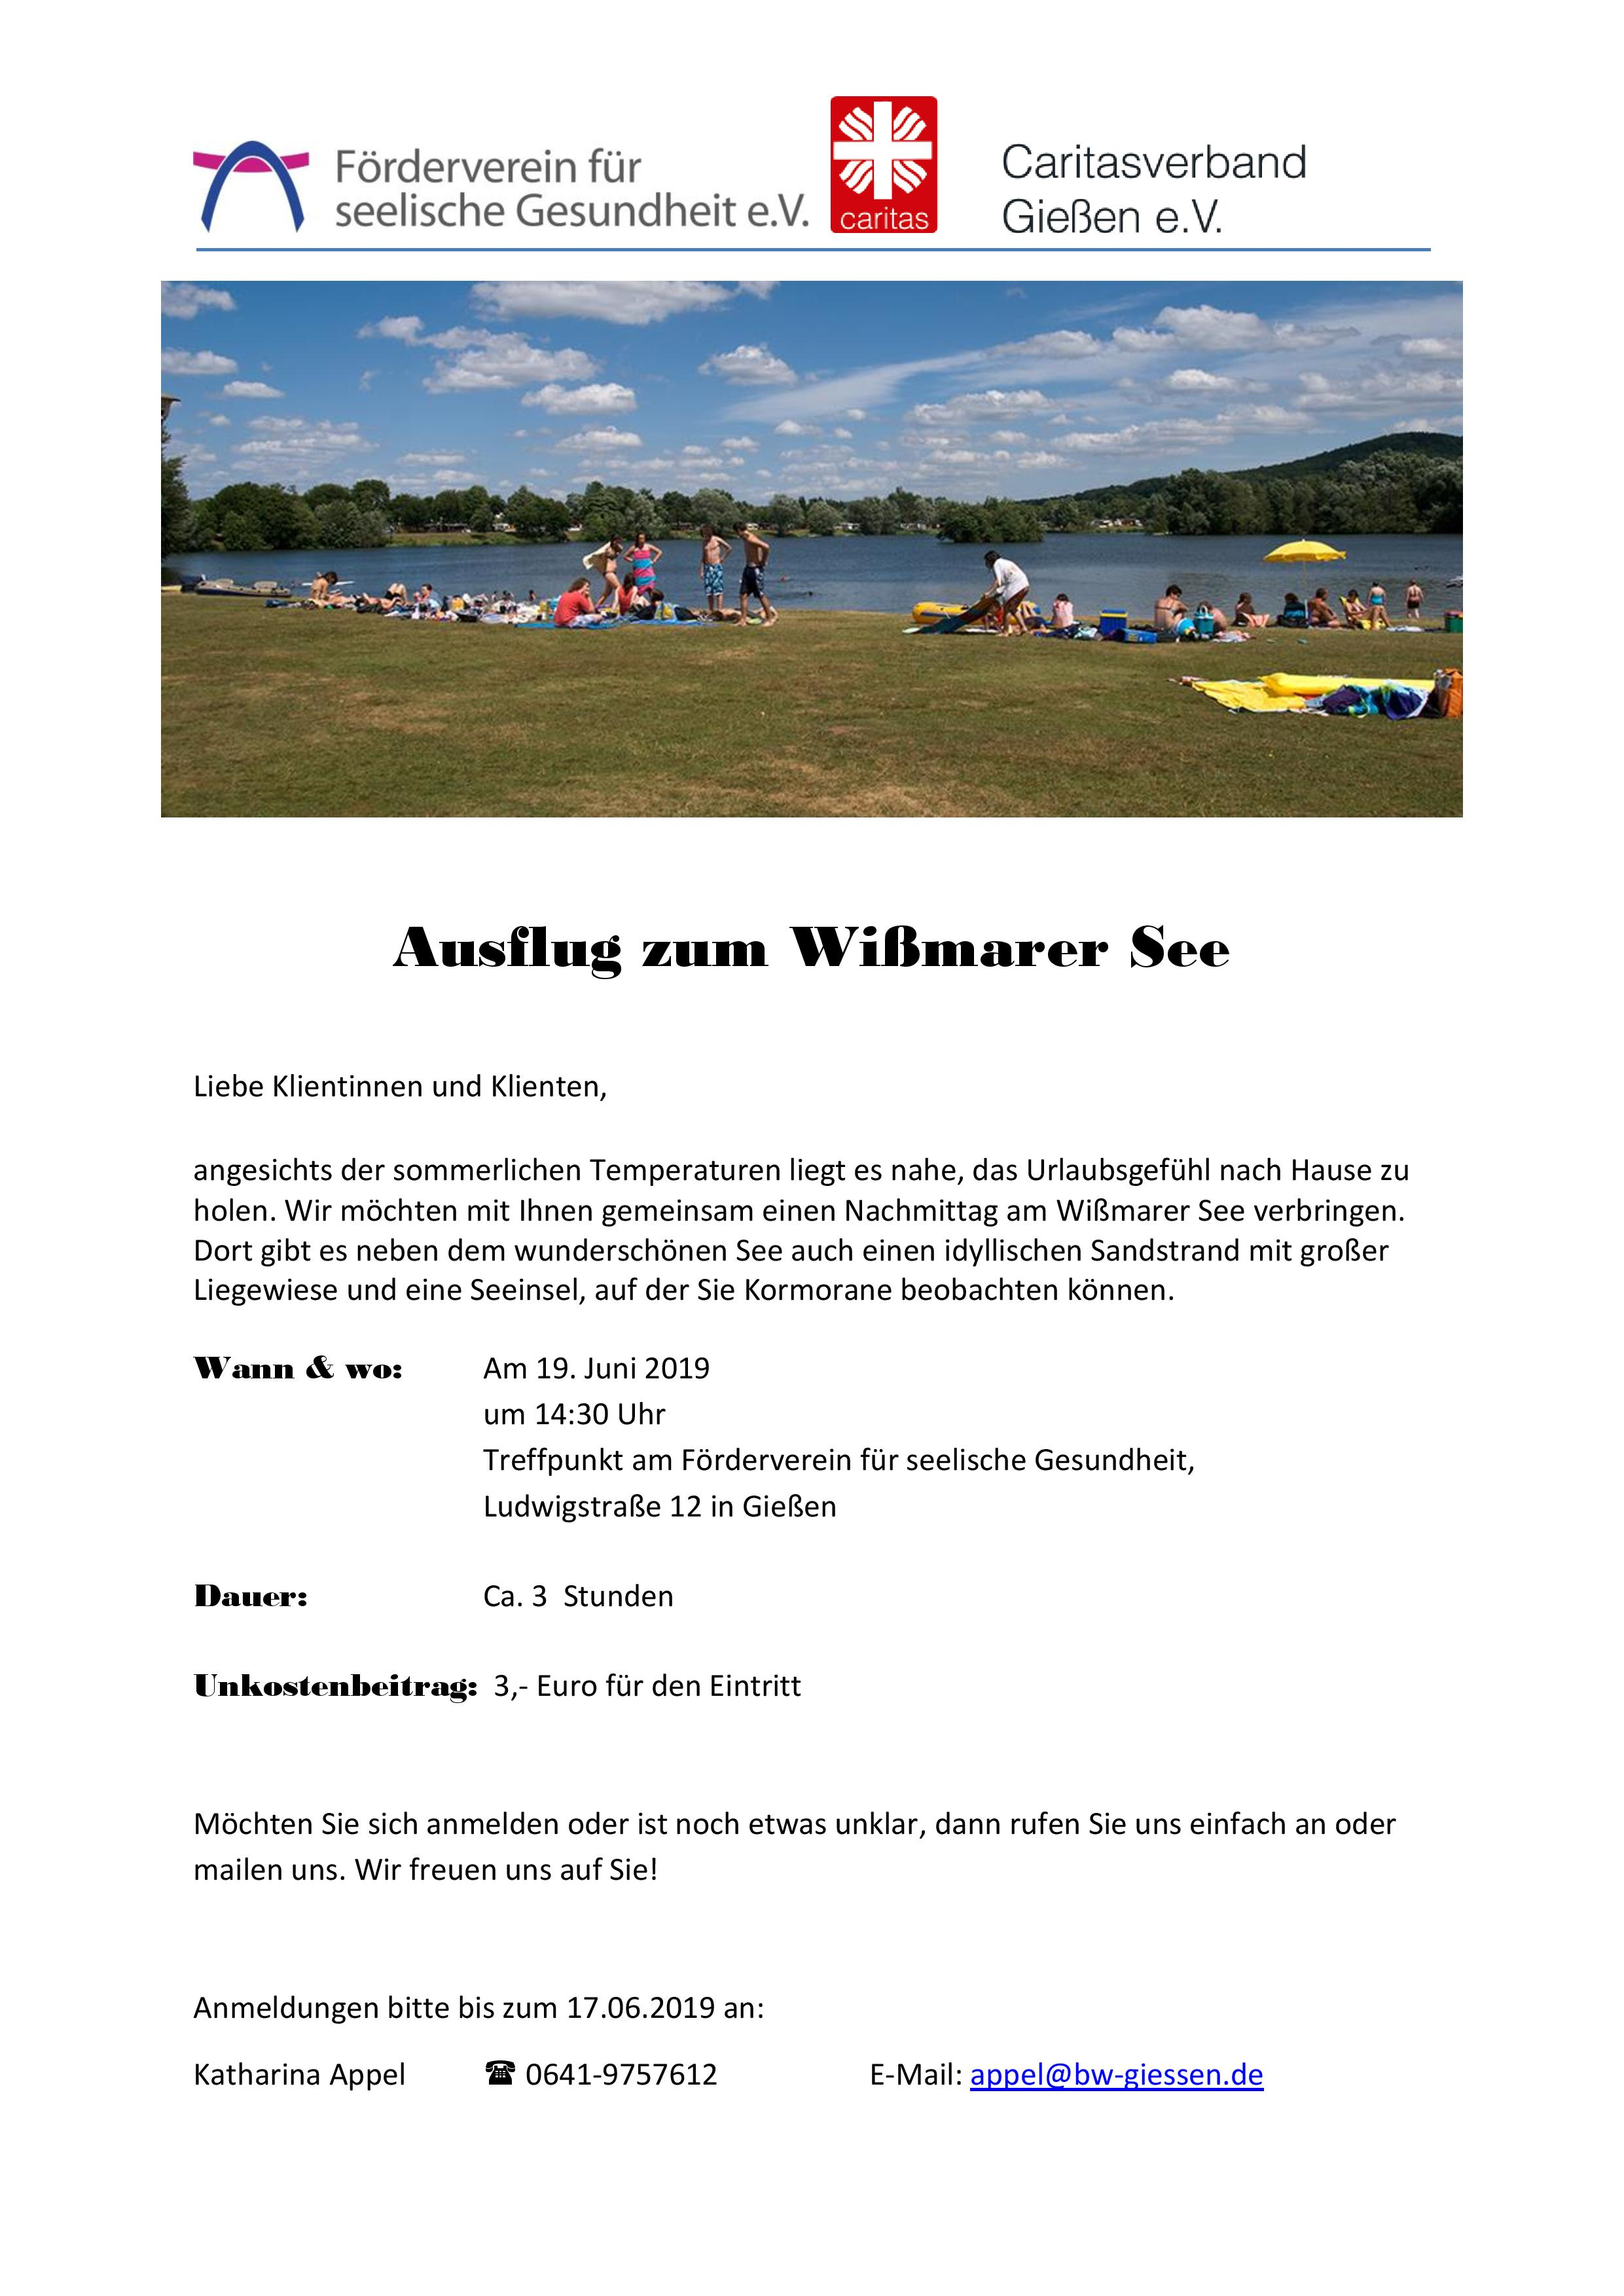 Wimarer See